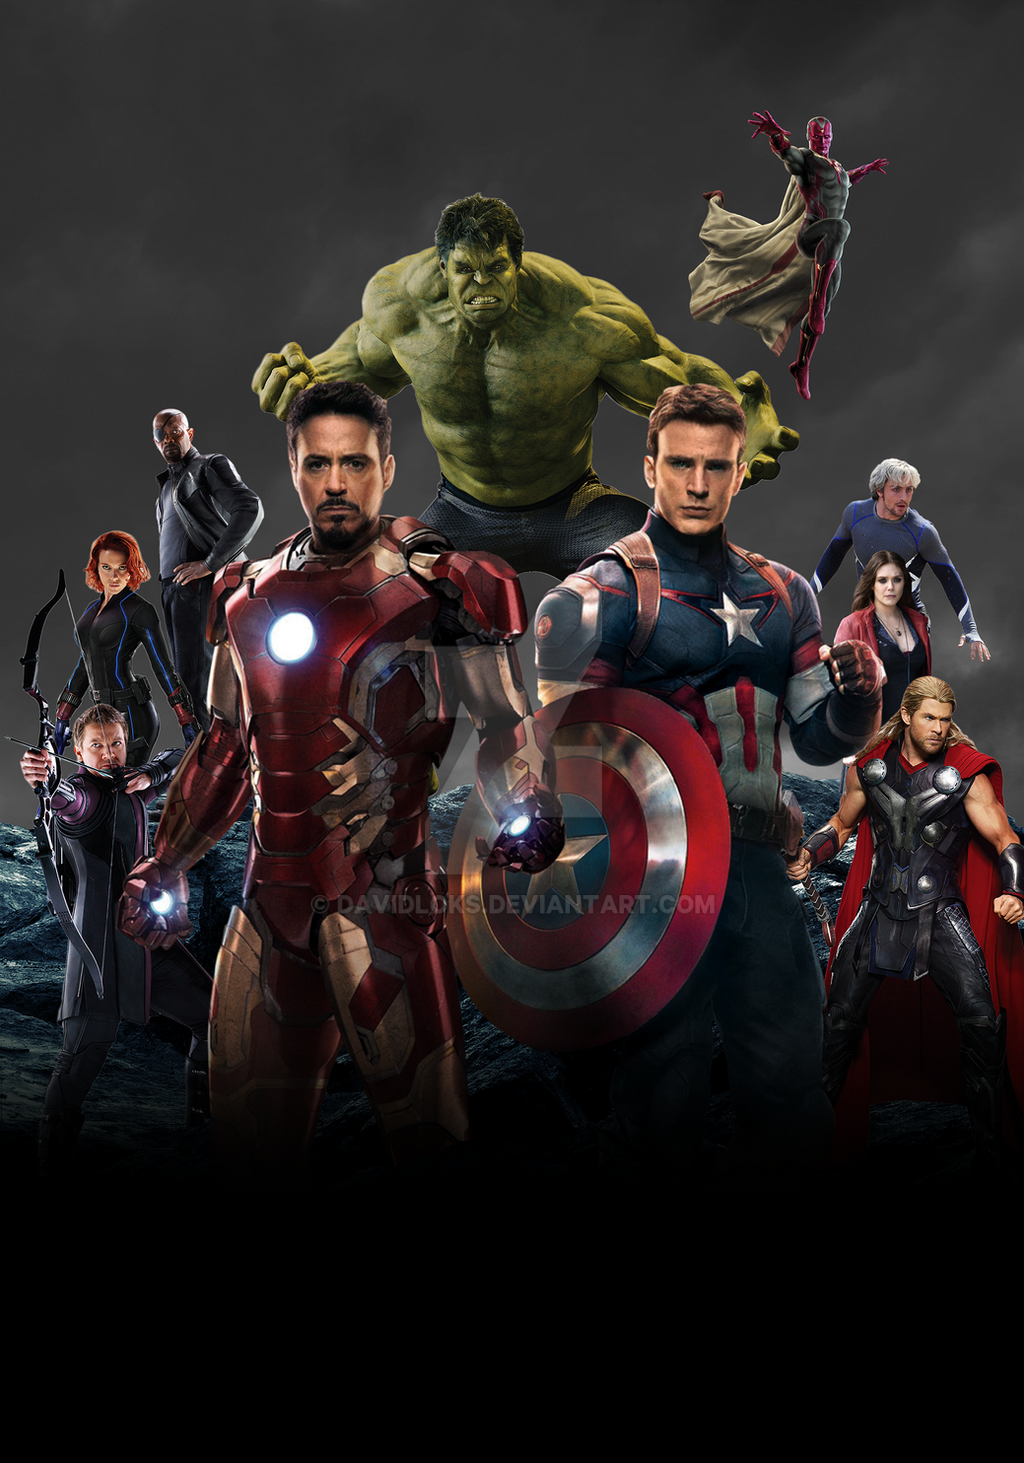 Avengers Age Of Ultron By Iloegbunam On Deviantart: Avengers: Age Of Ultron Poster (FM) By DavidLoks On DeviantArt